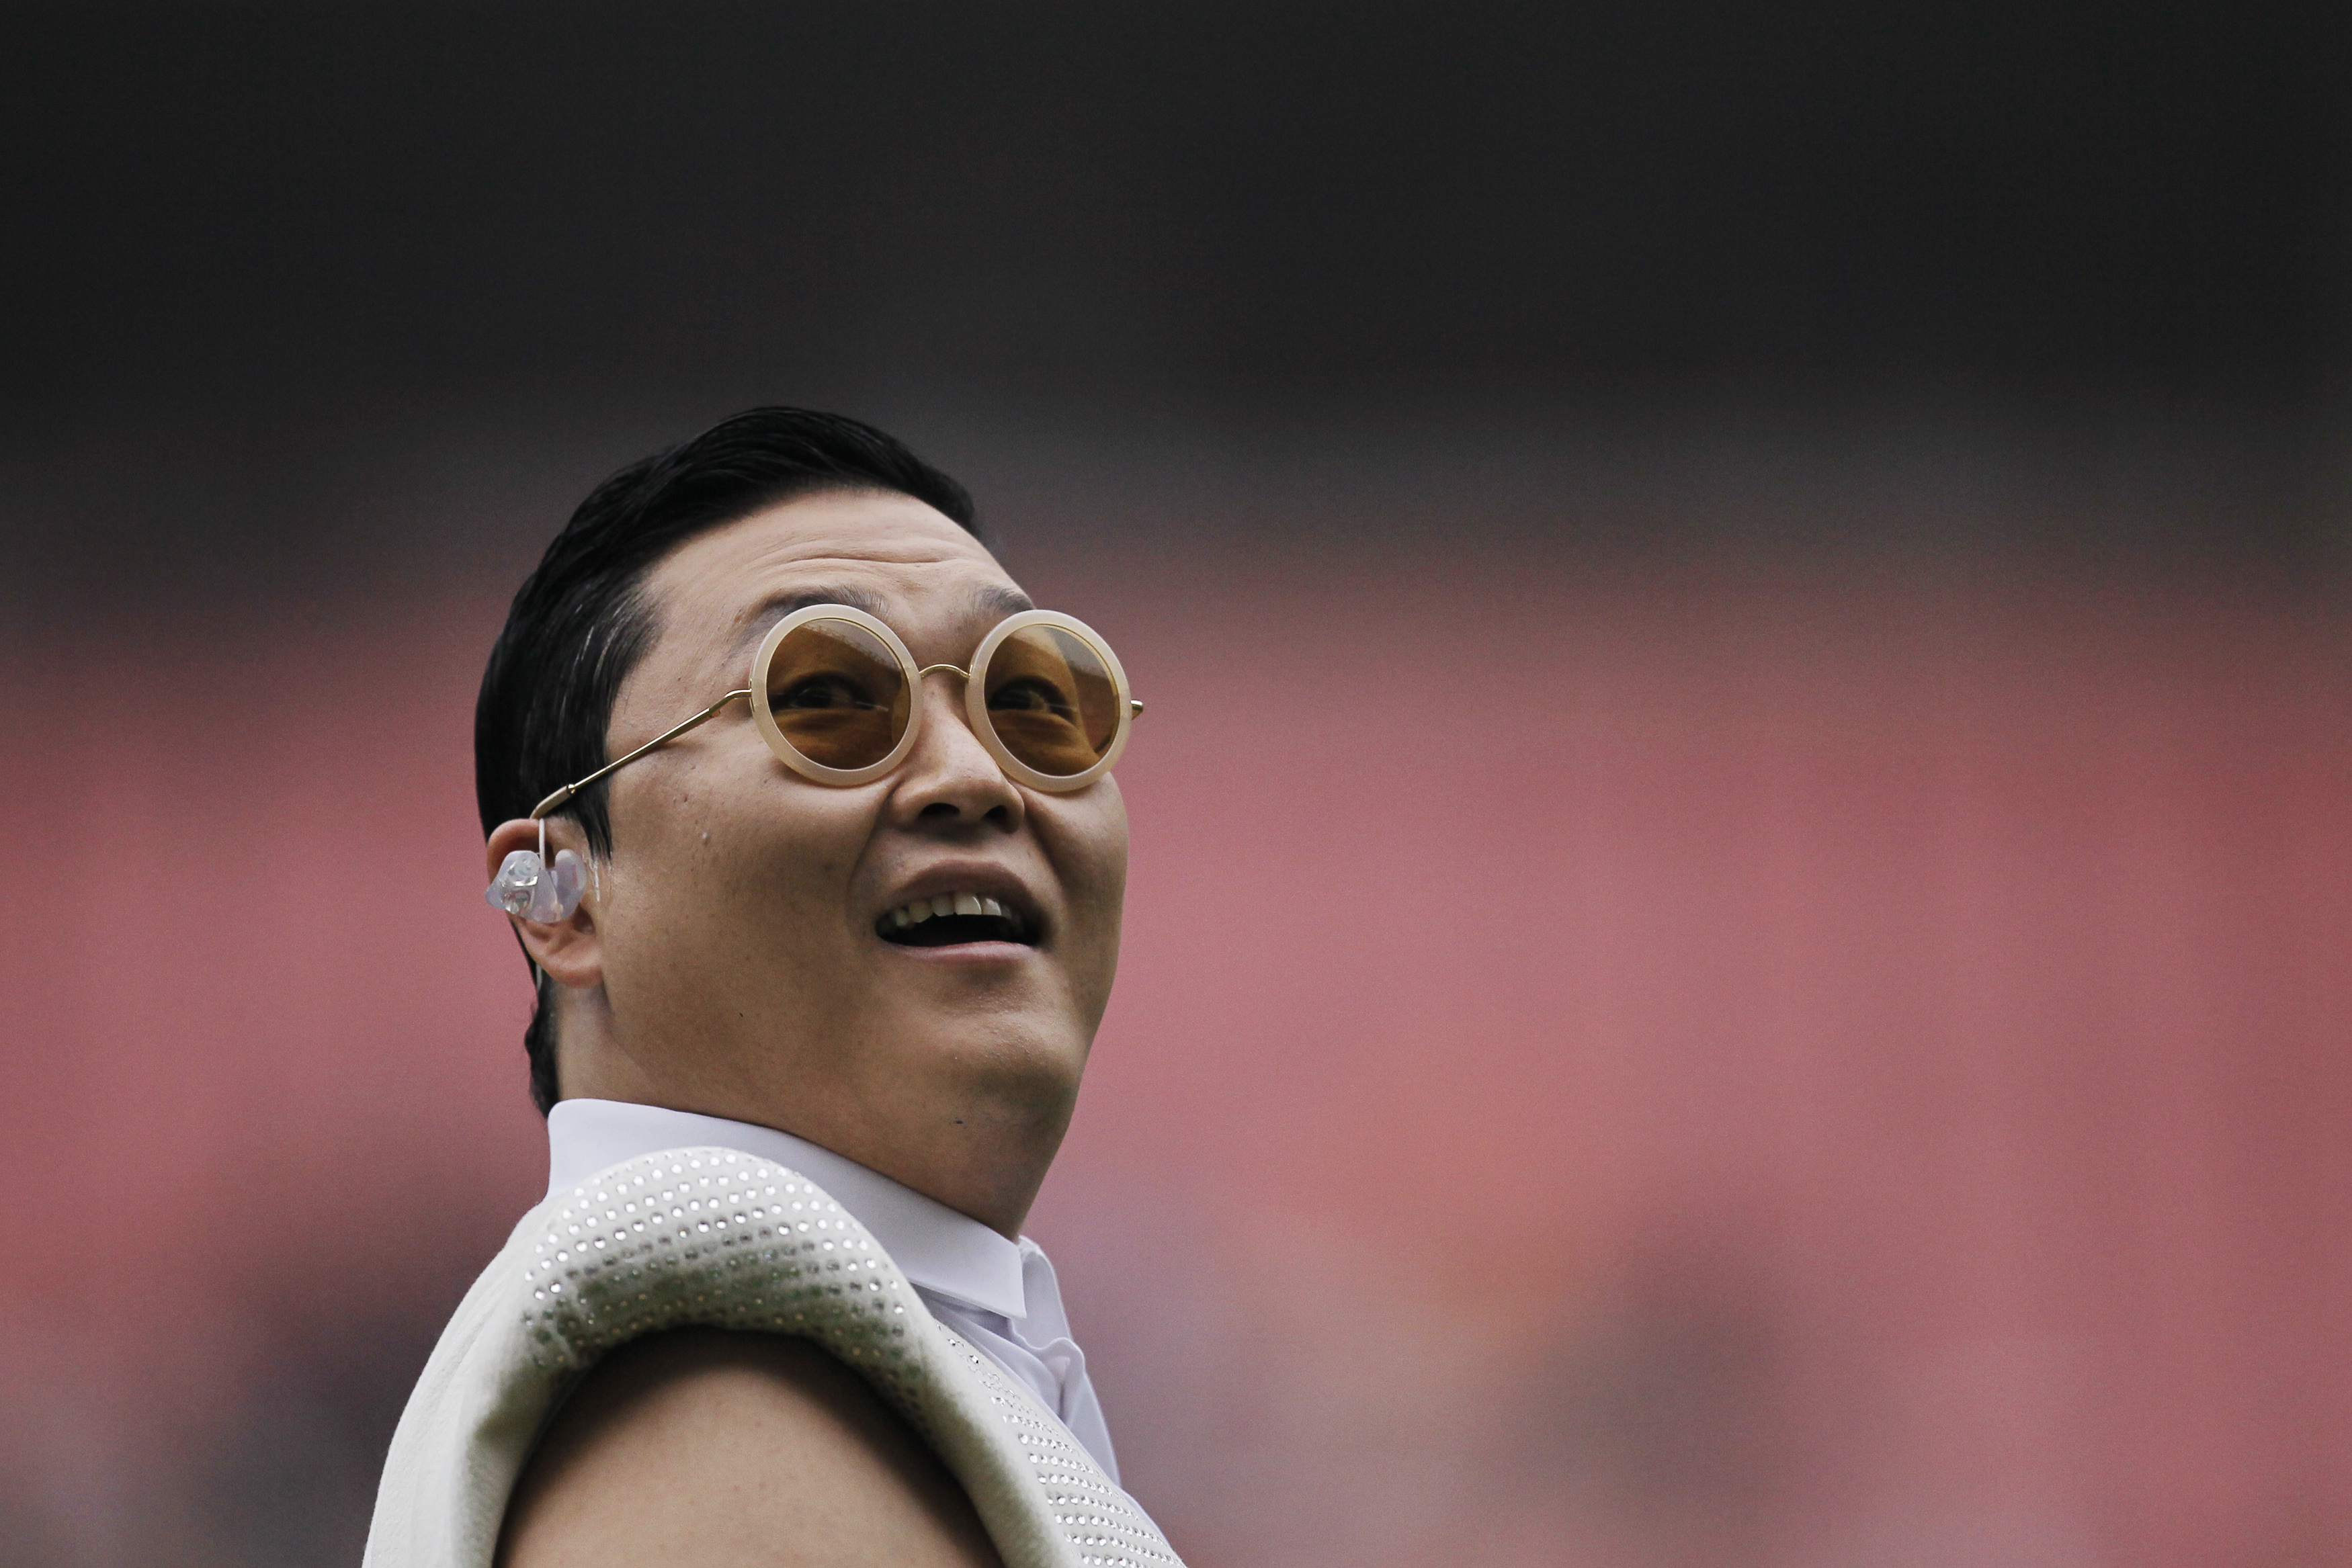 South Korean singer Psy performs during a charity soccer match in Shanghai on June 23, 2013